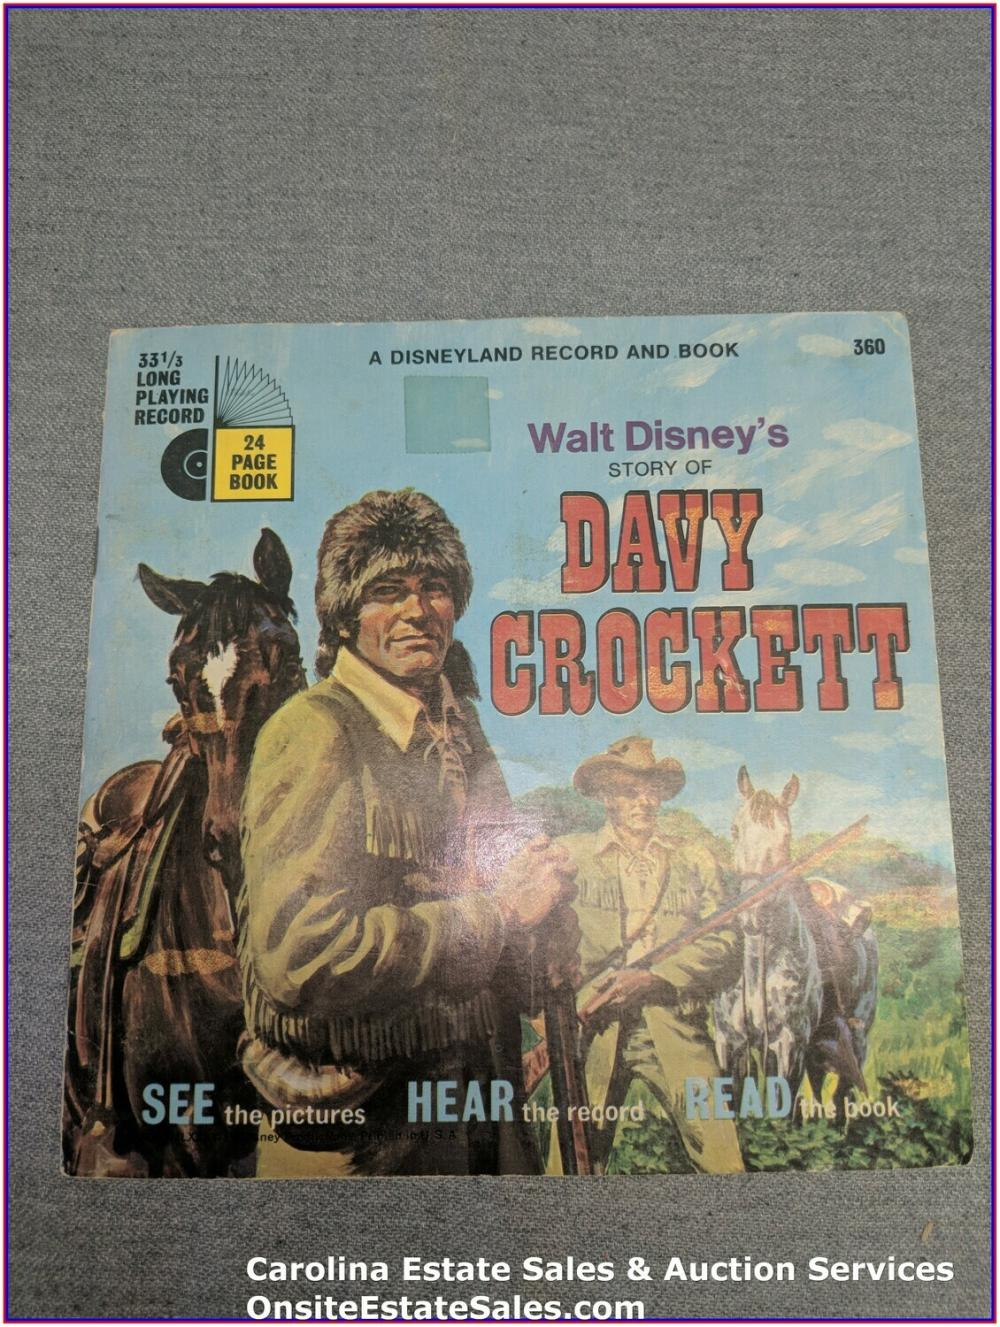 Dave Crockett Book & Record